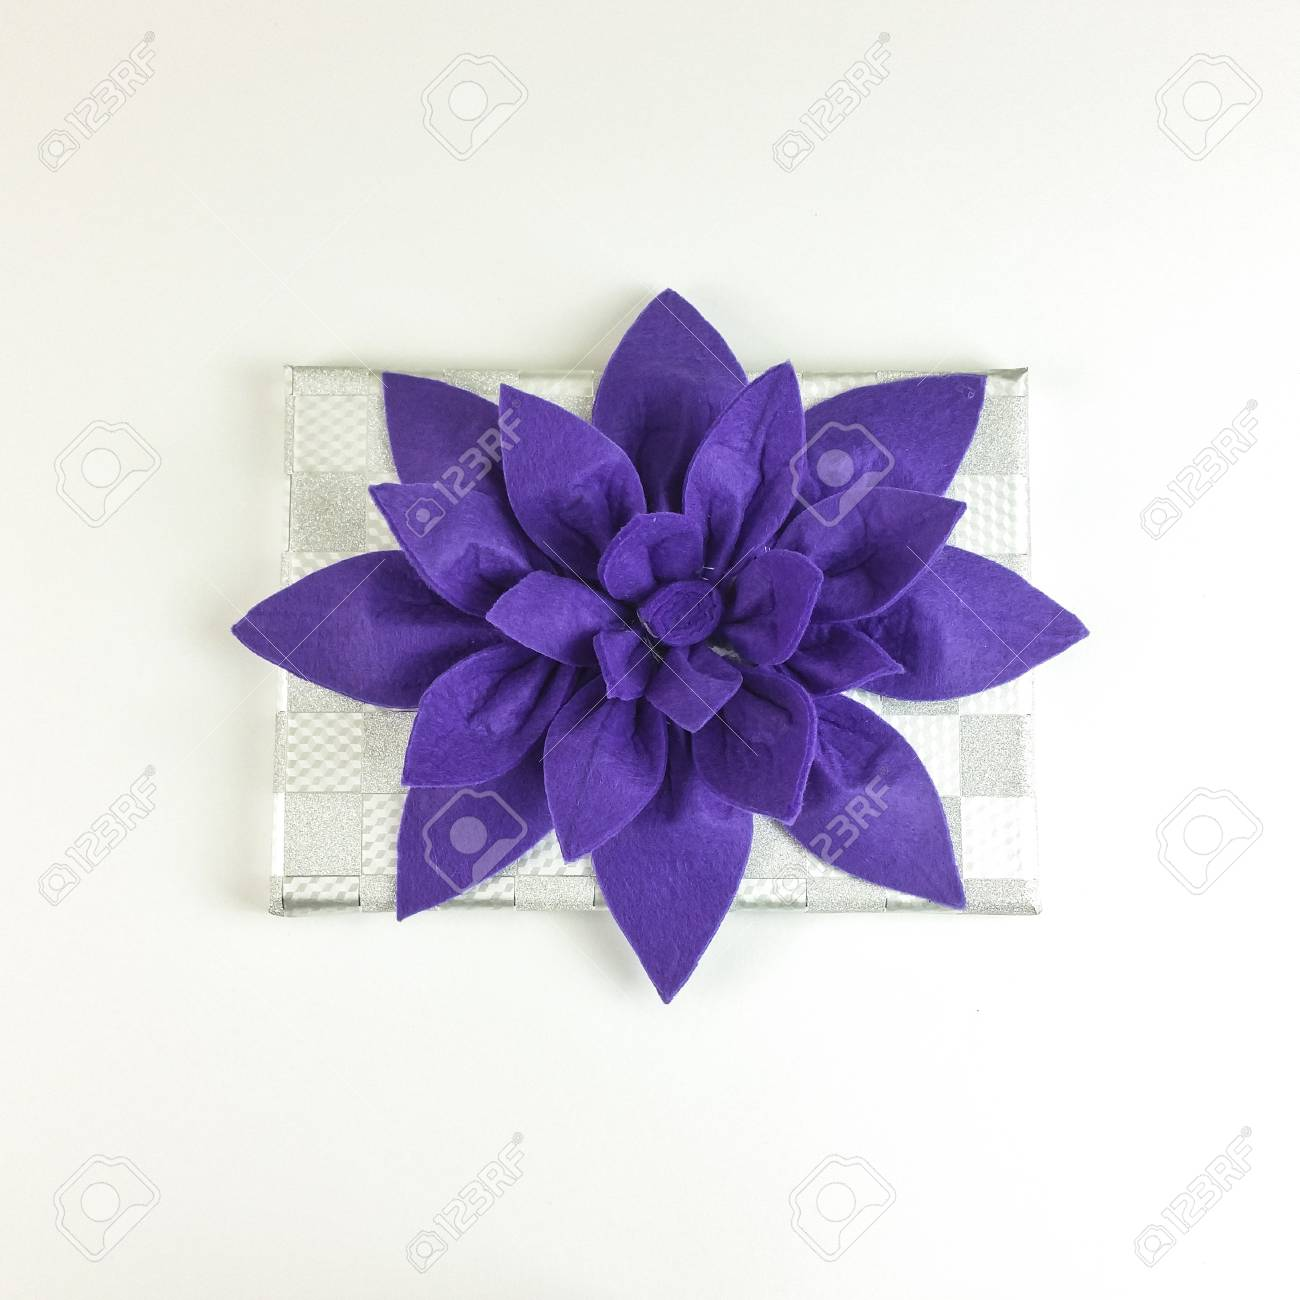 Homemade Felt Purple Flower Centerpiece With Cup Holders And Stock Photo Picture And Royalty Free Image Image 94969391